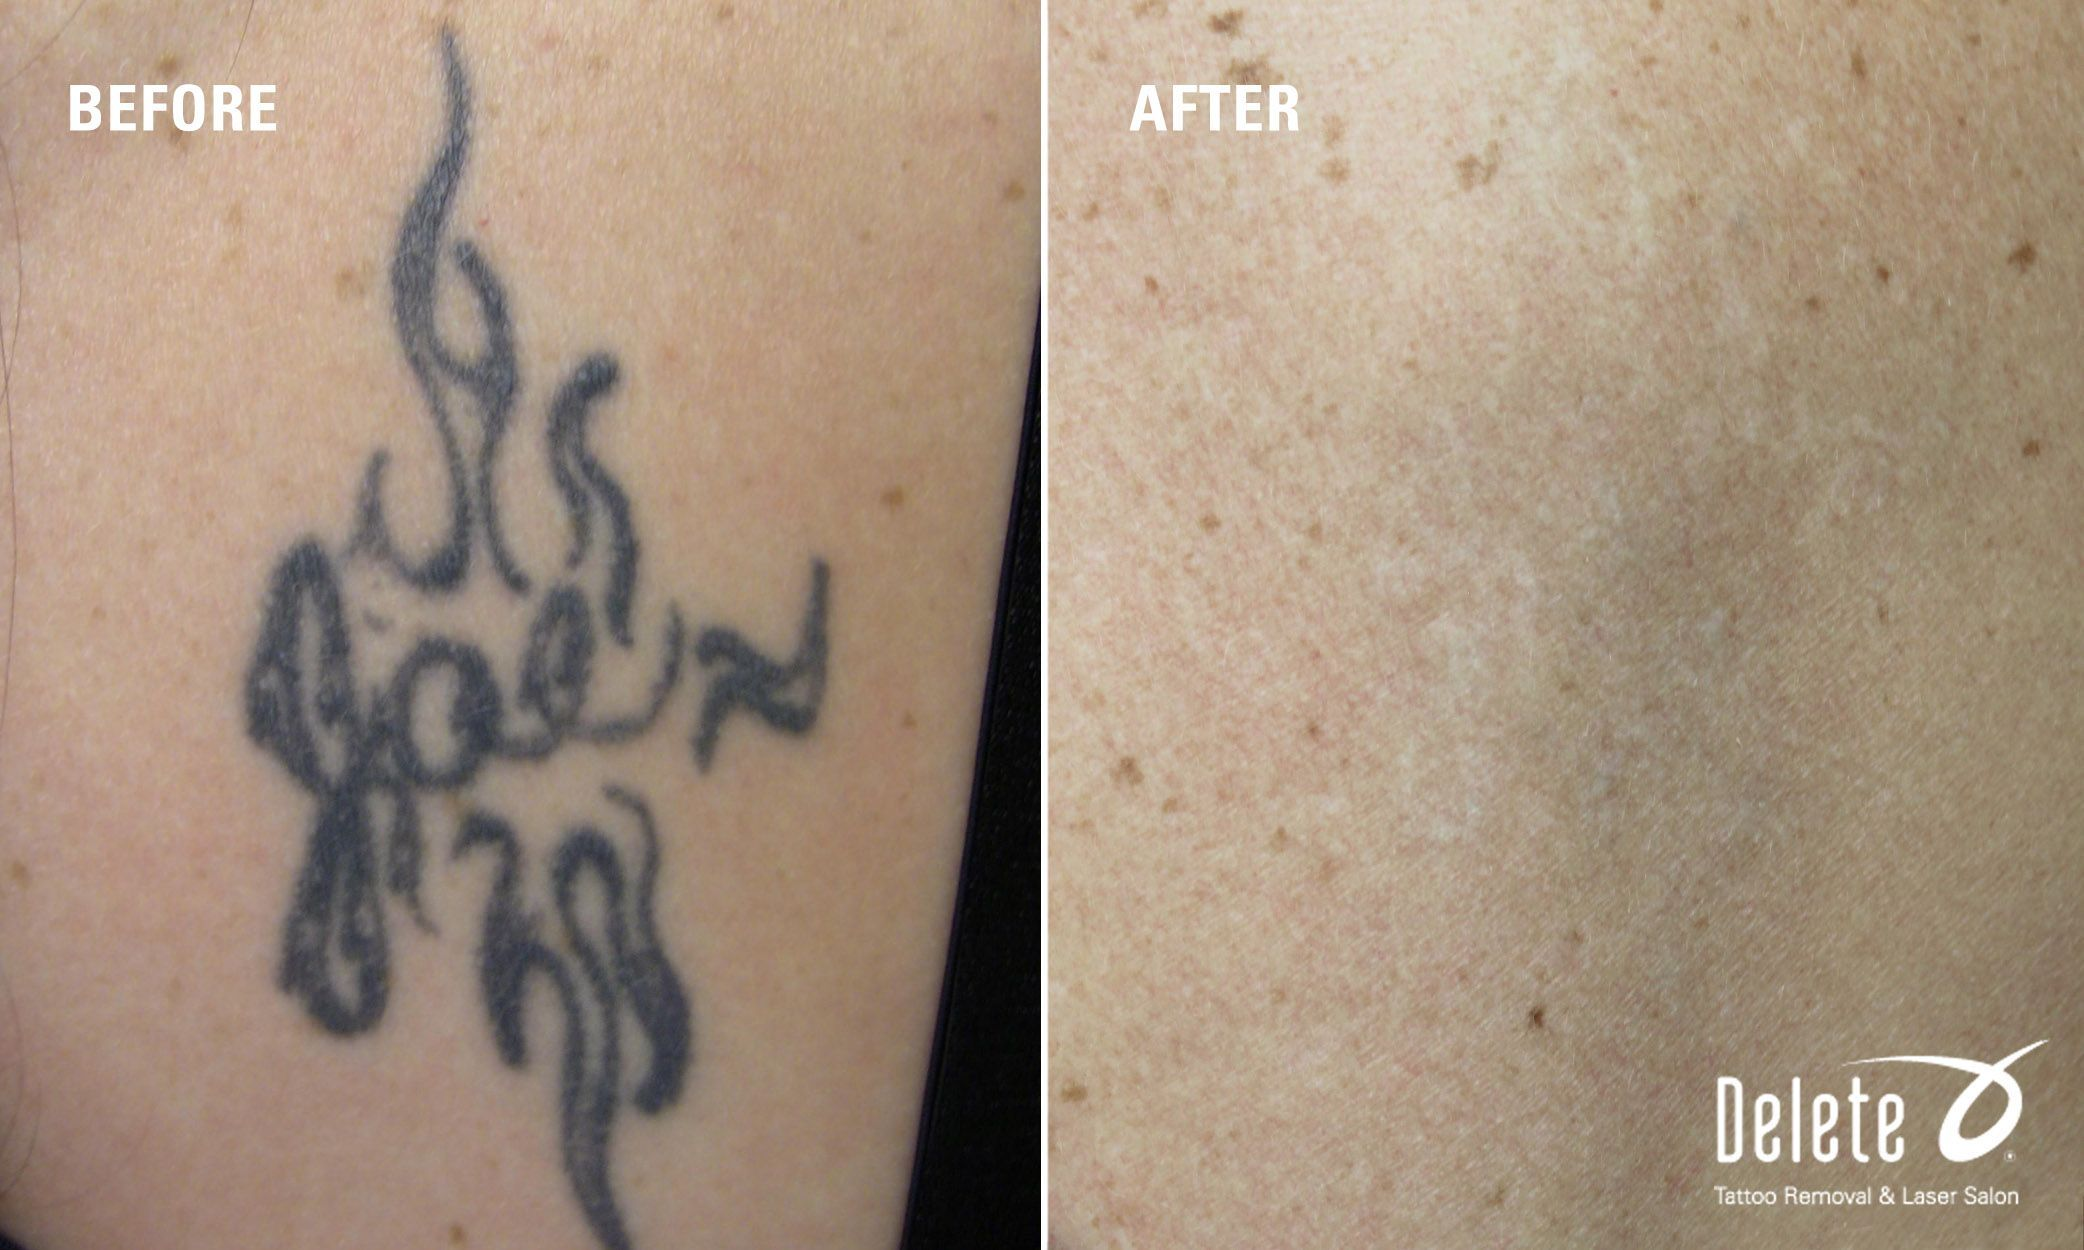 Arm You Glad It Before After Tattoo Removal Monday Another Happy Patient S Results Using The Picoway Laser Tattoos Tattoo Removal Laser Tattoo Removal